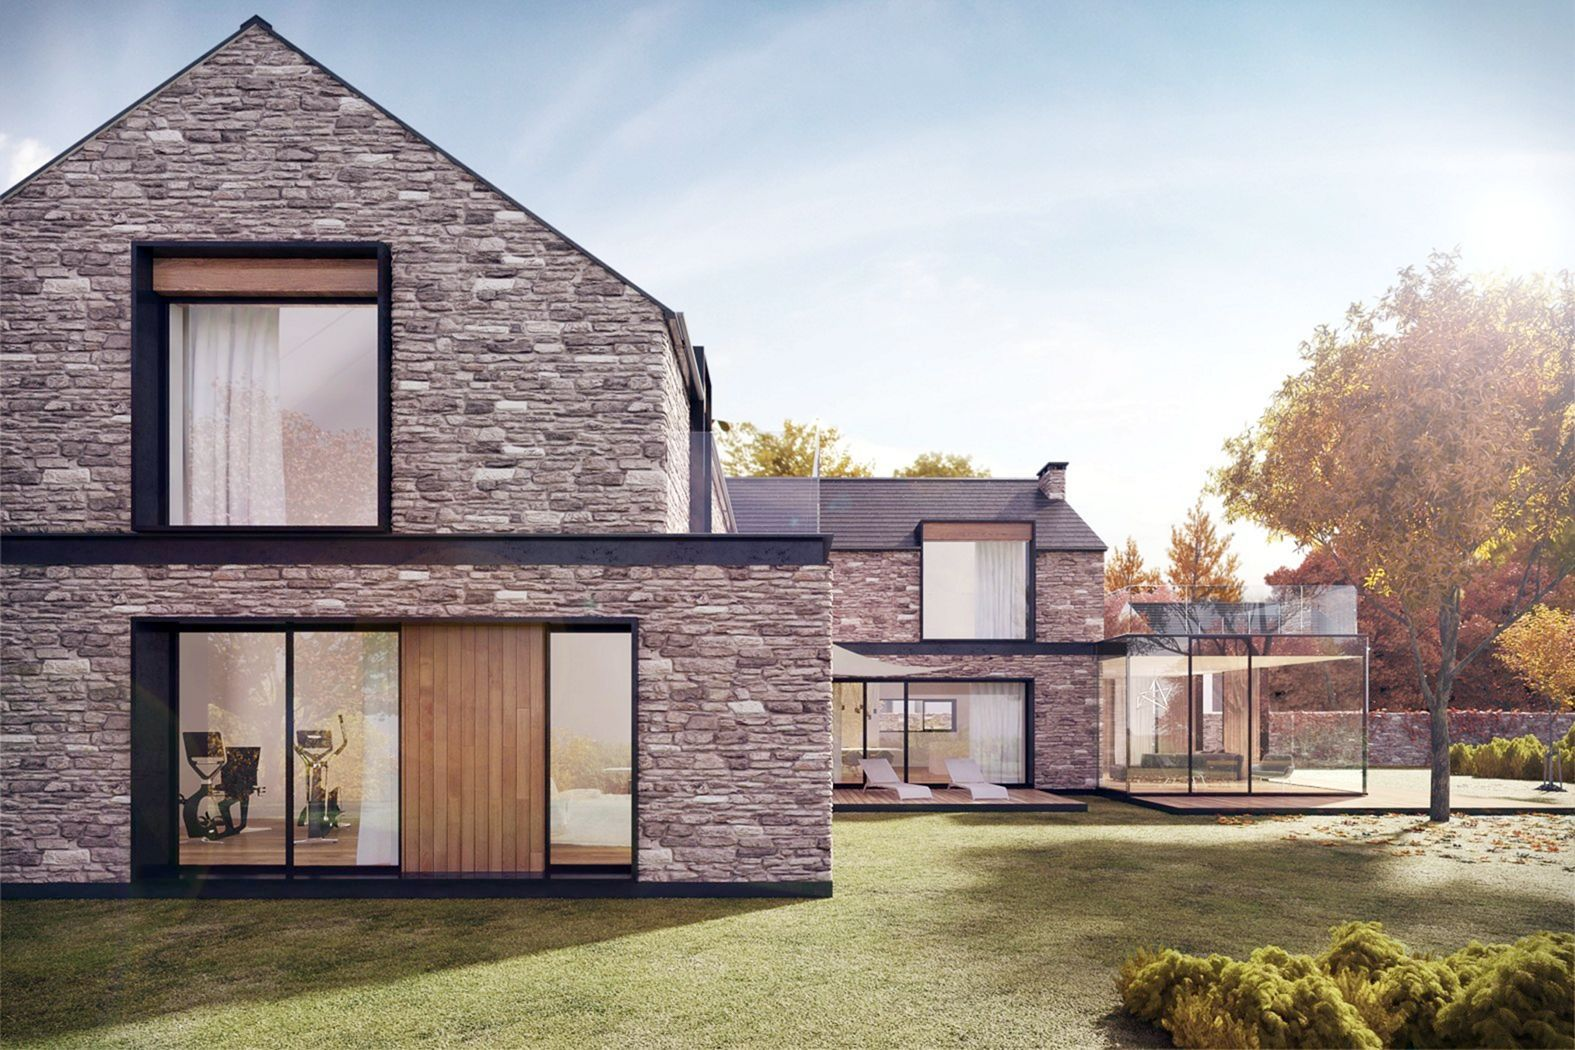 15 Awesome Modern Brick Stone House Architecture Ideas In 2020 Small House Design Exterior Stone House Plans Small House Exteriors